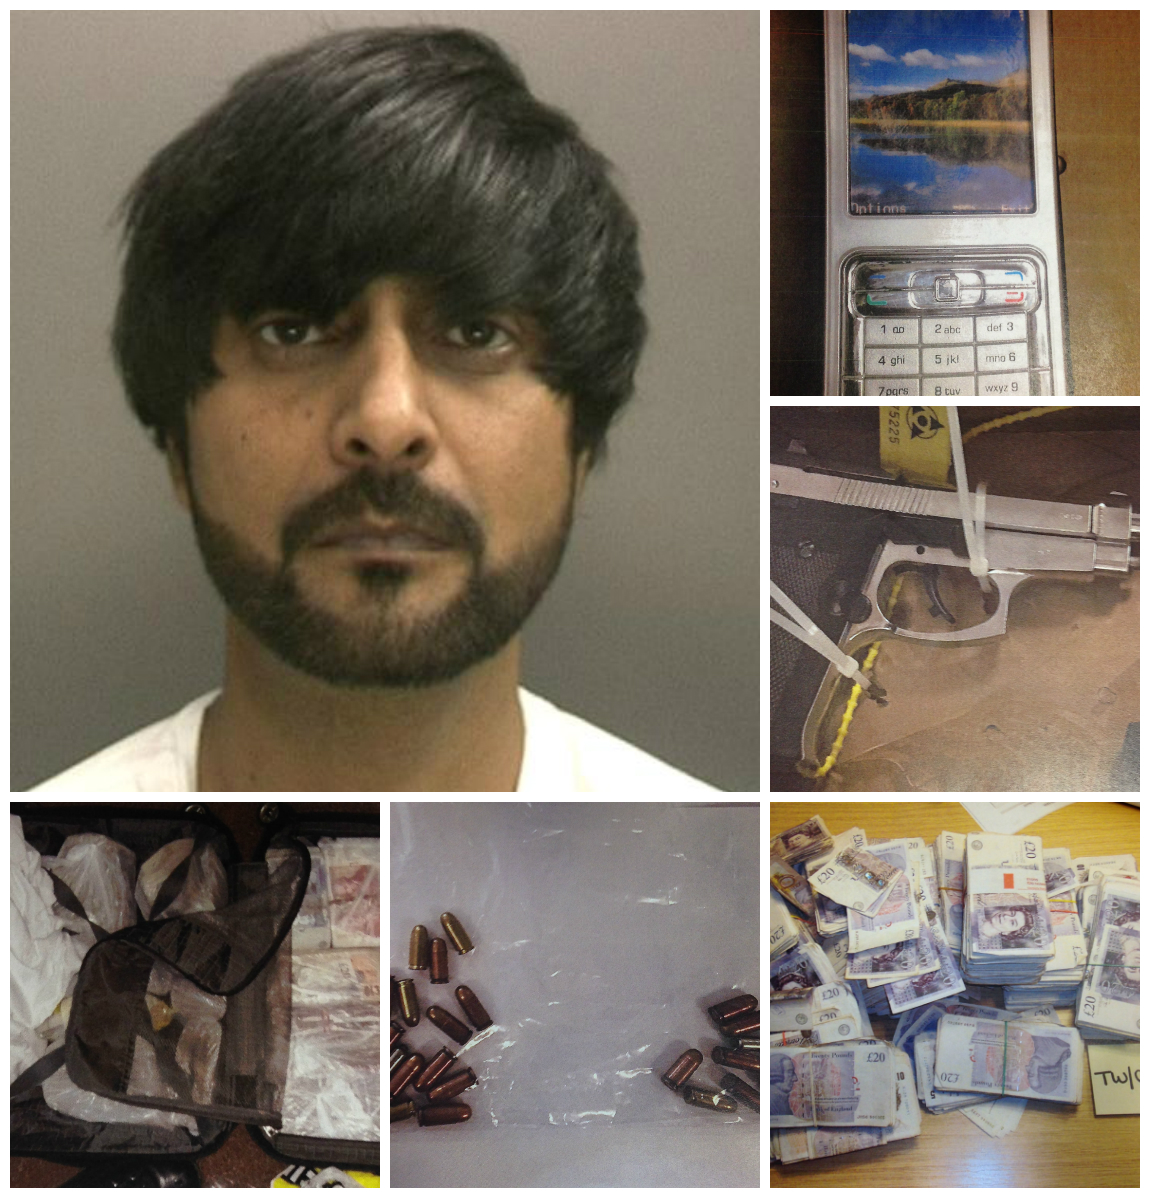 majid hussain the drug dealer